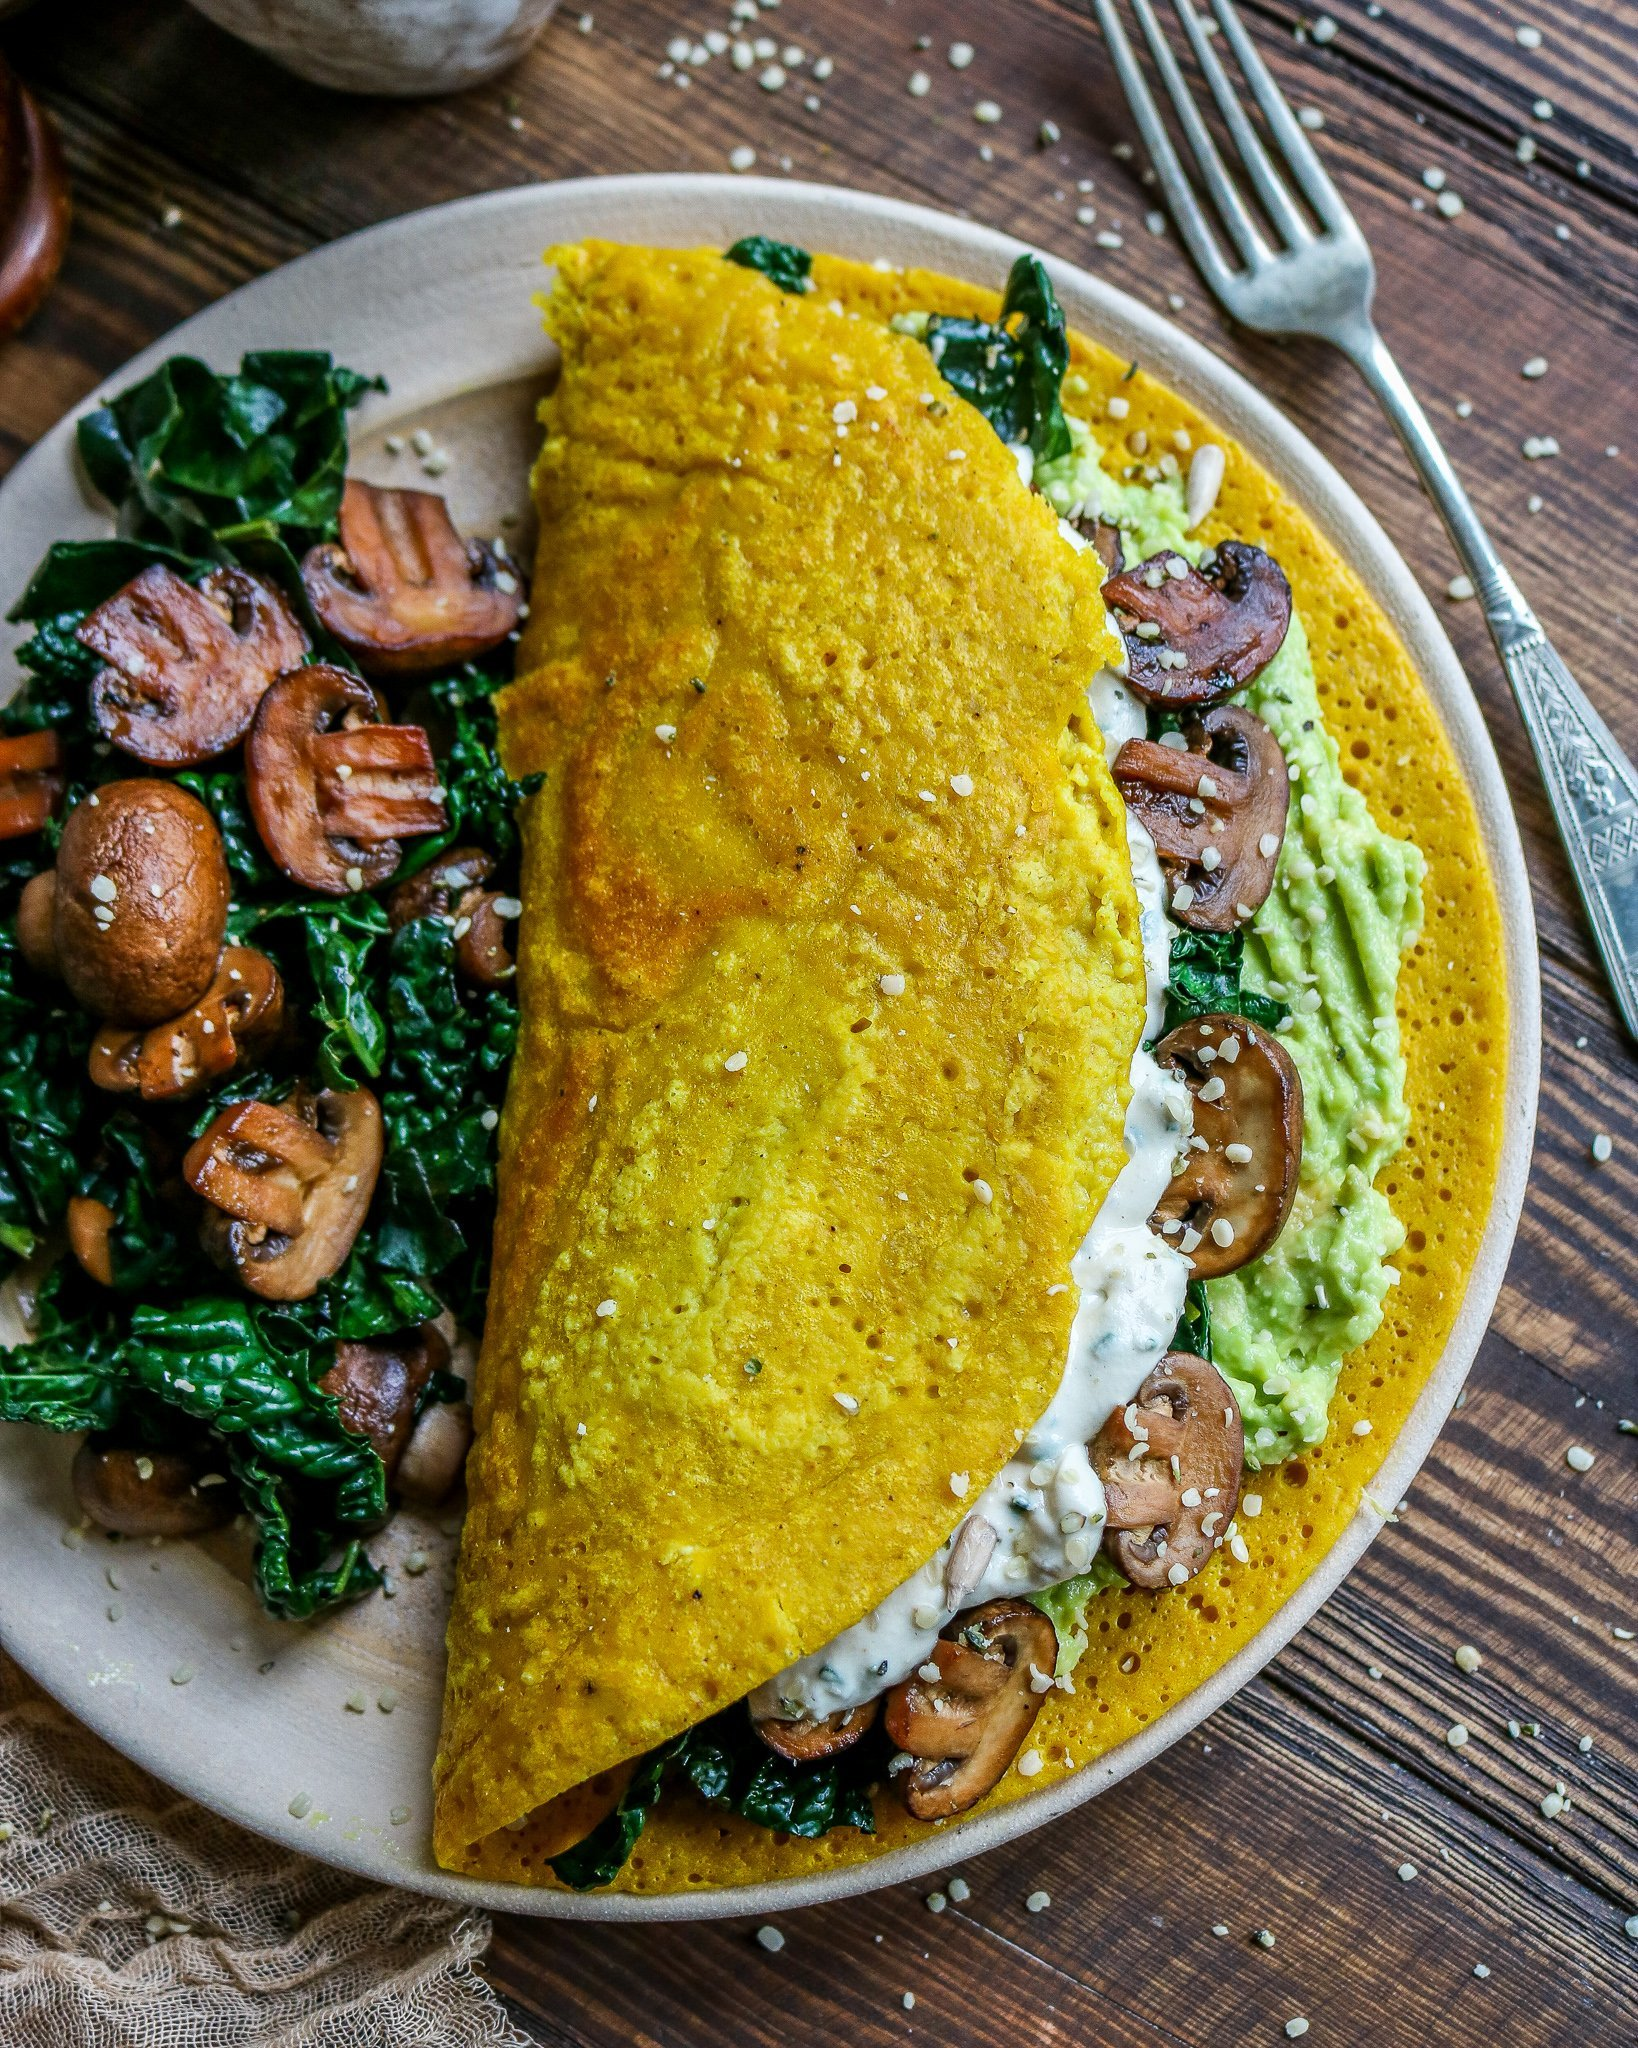 Vegan Omelette with Mushrooms & Kale